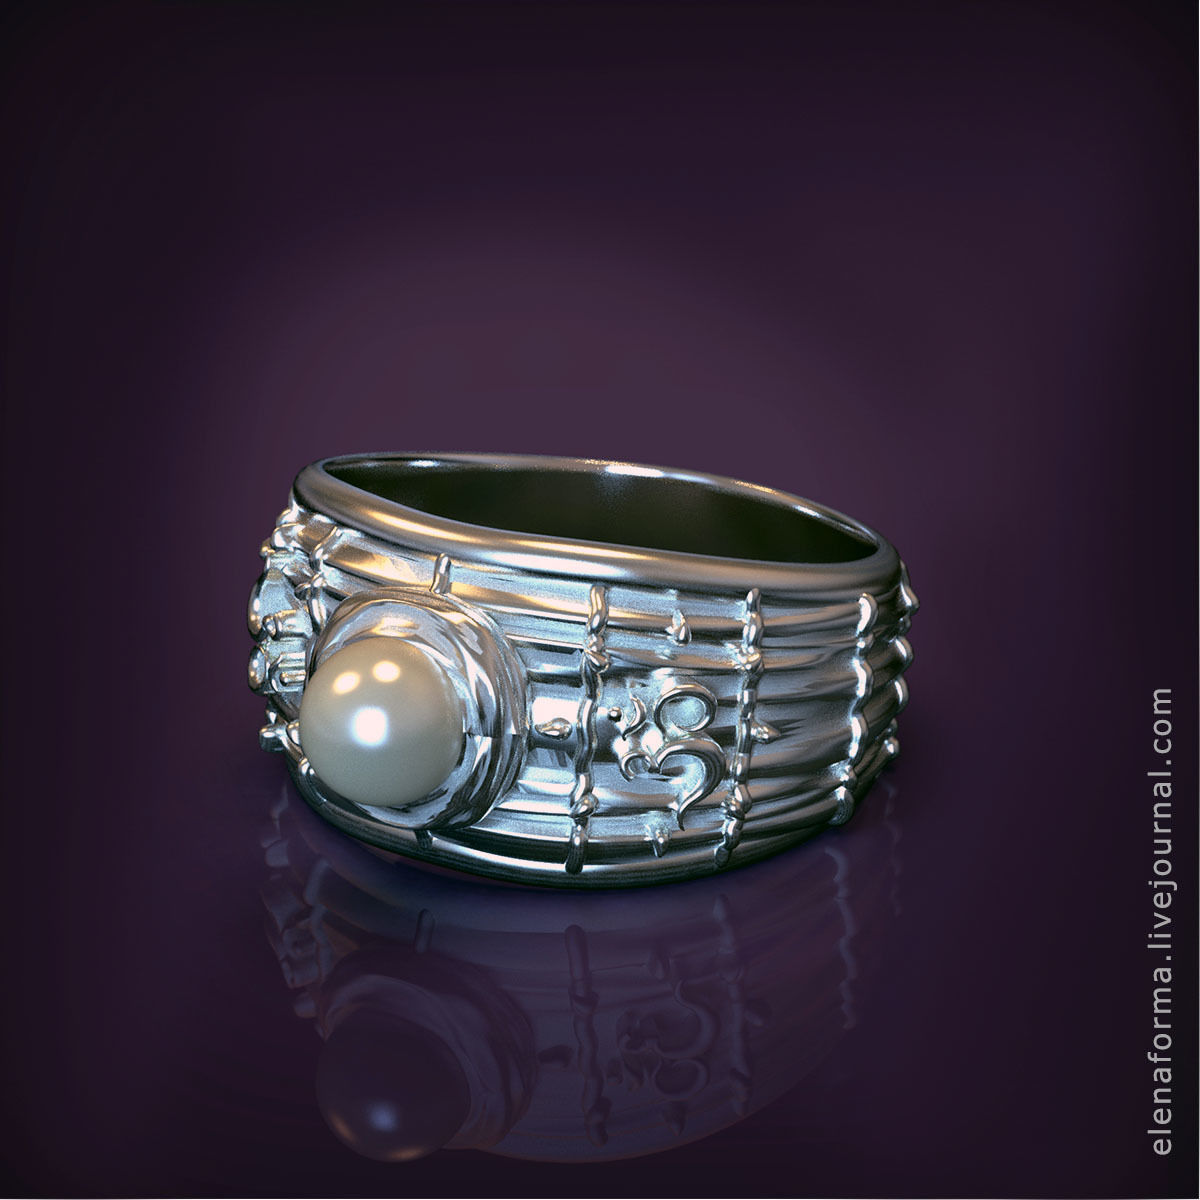 The Om mantra ring with pearl and video